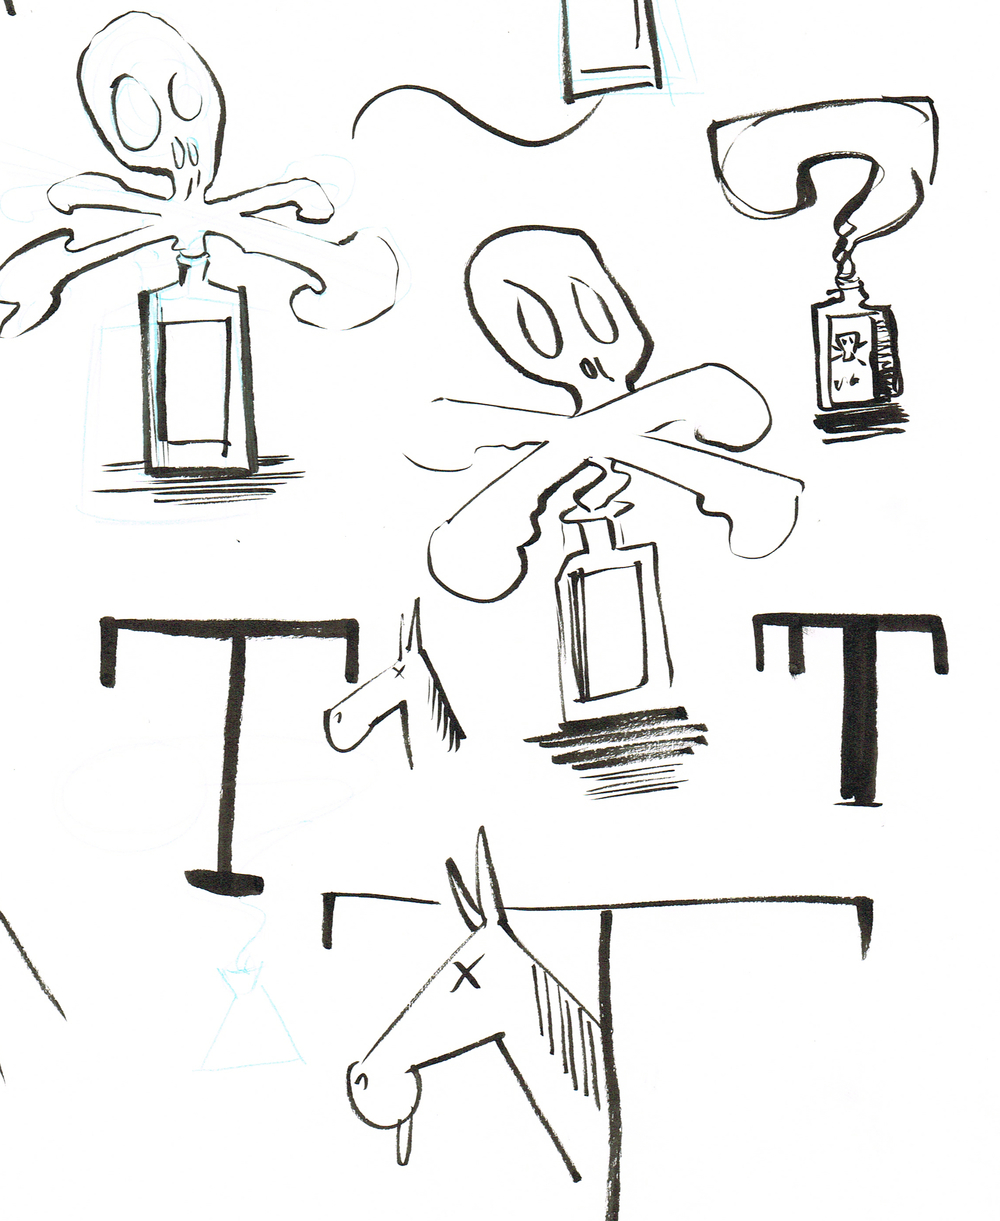 Sketches for a recent Graphic Principles assignment.